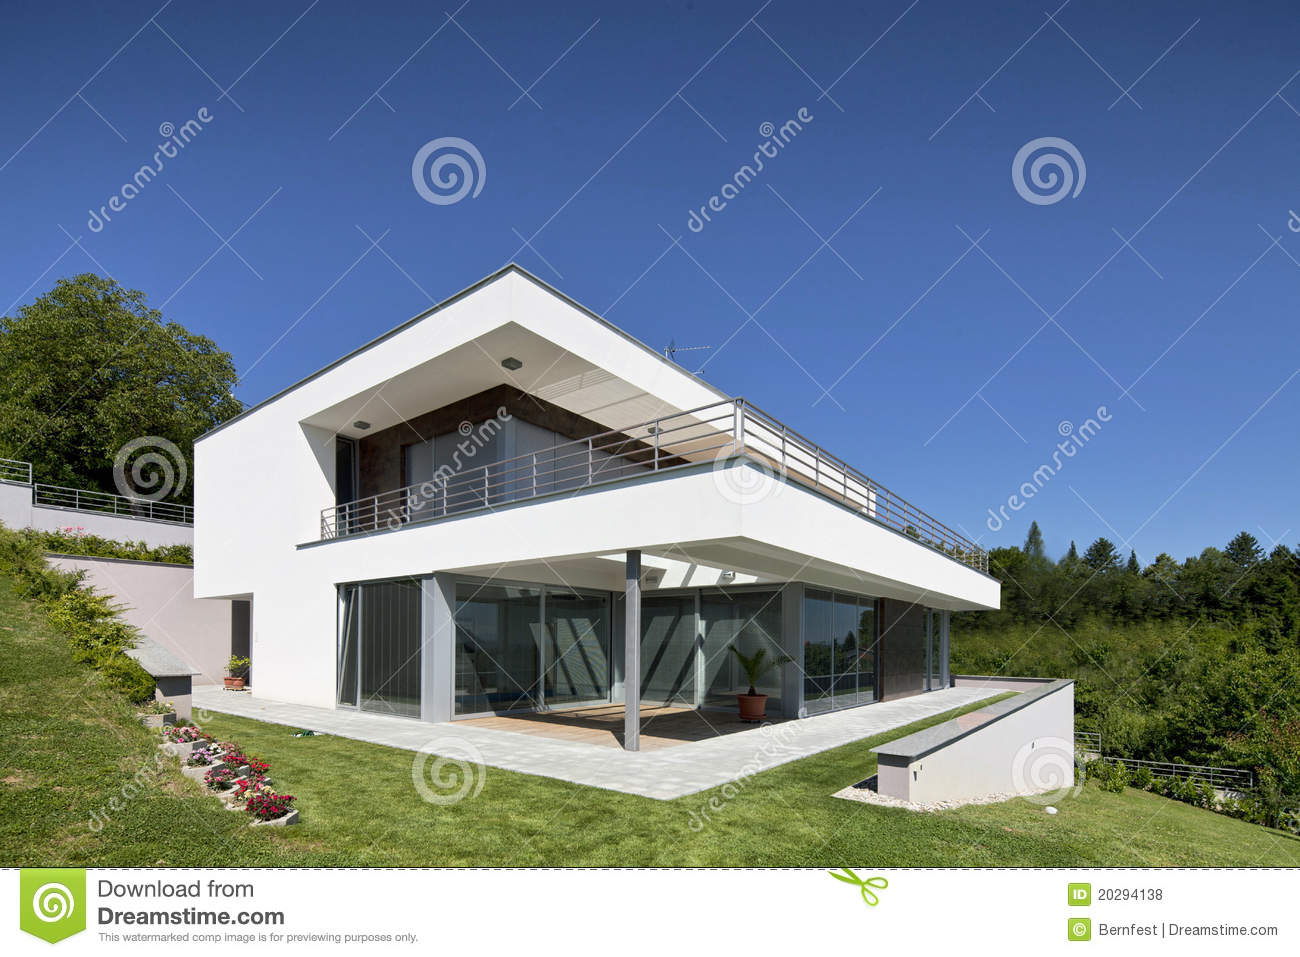 Belle maison moderne photo stock image du wide moderne for Belle maison moderne plan